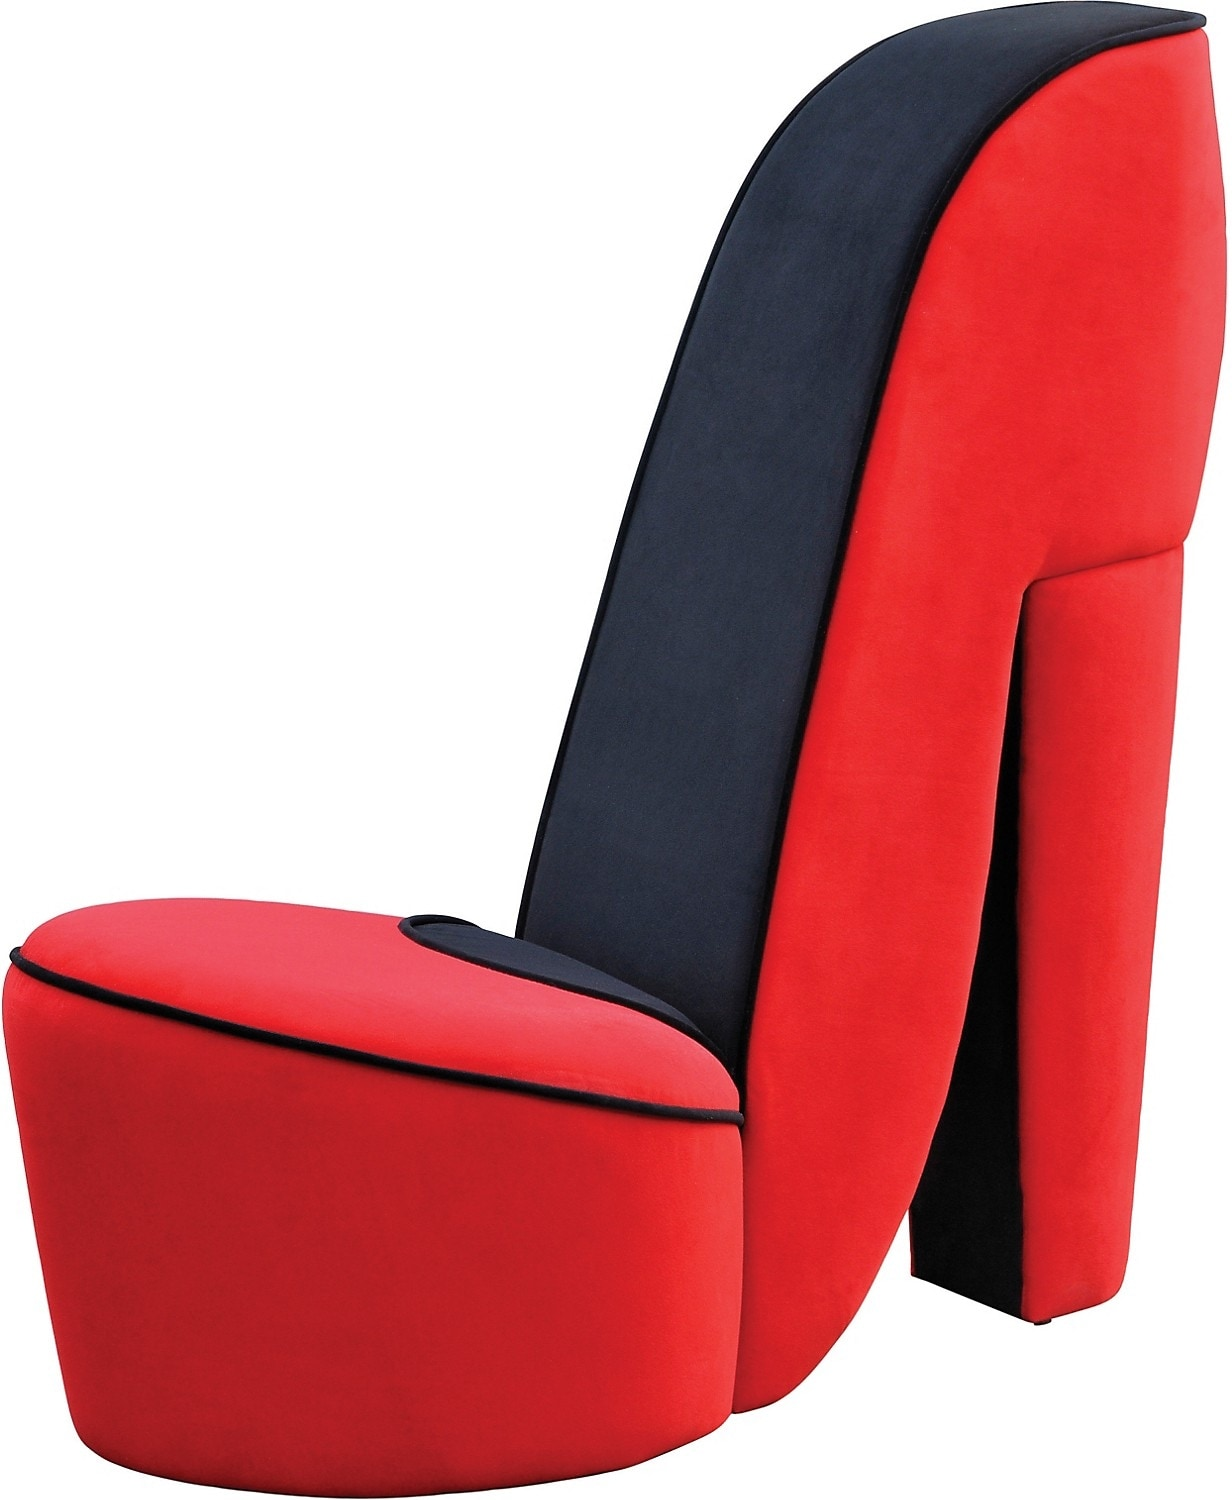 For teens accent and occasional furniture high heel shoe chair red